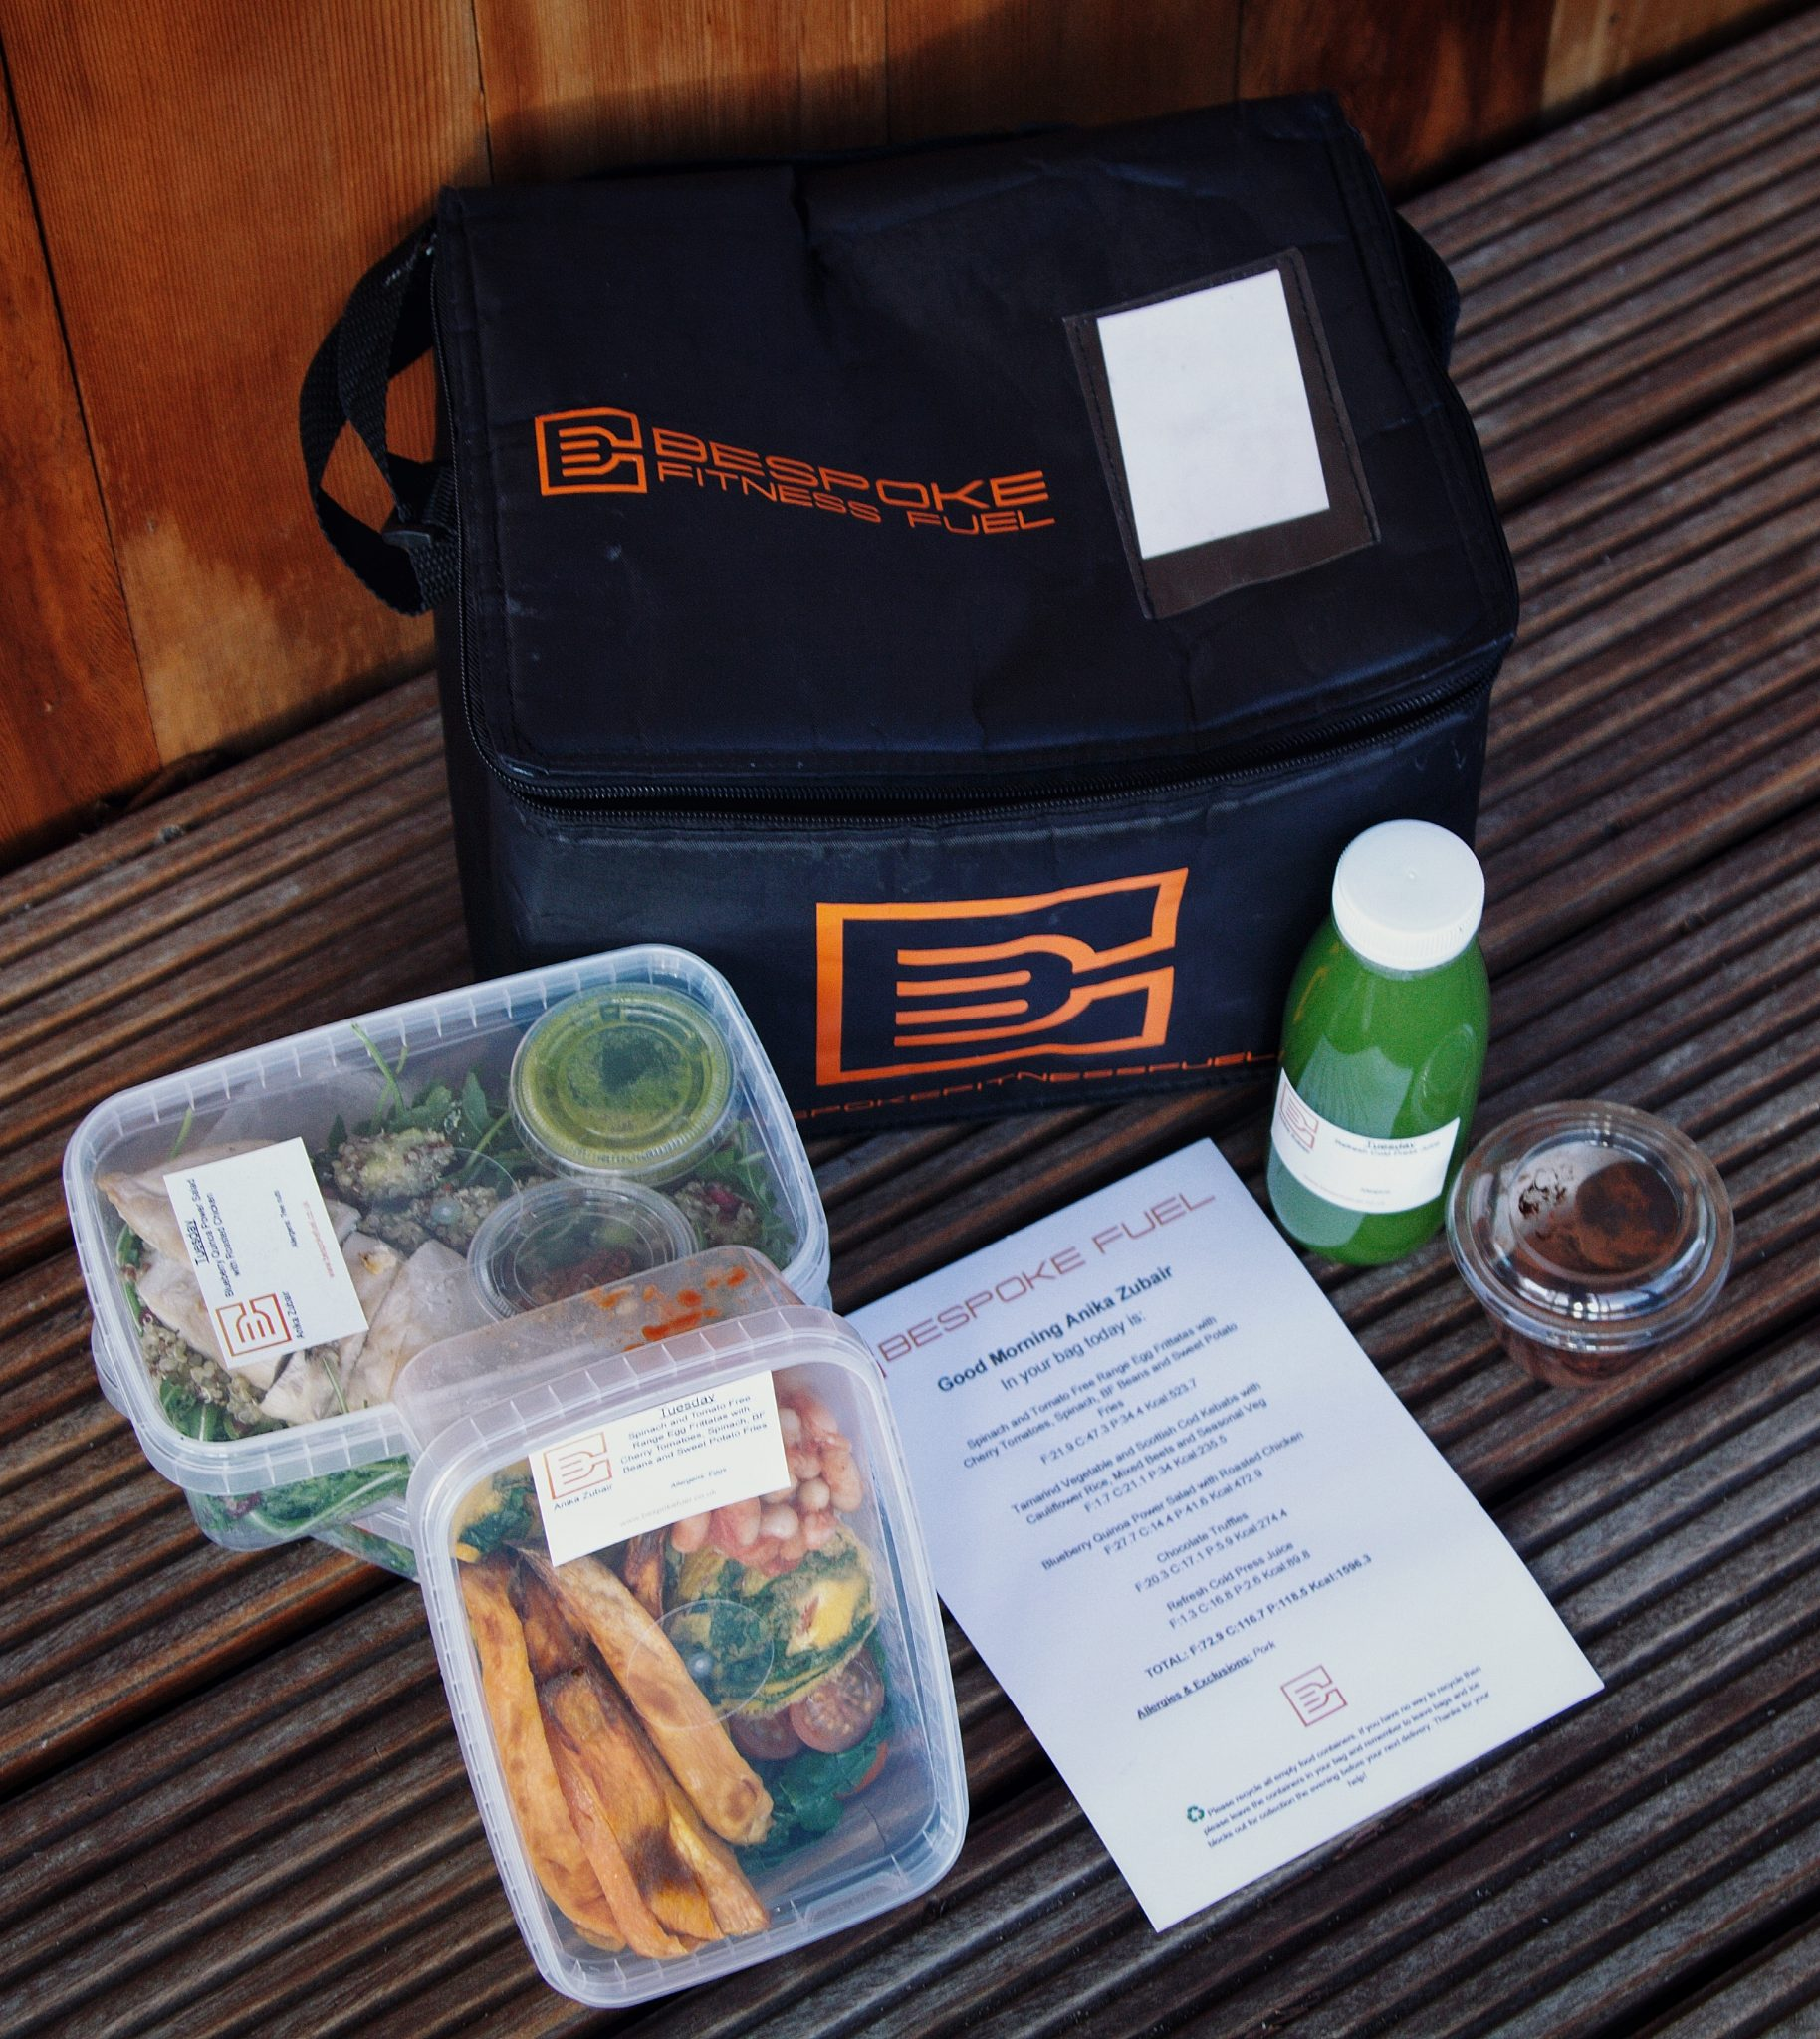 Bespoke Fuel - The healthier meal delivery service in London